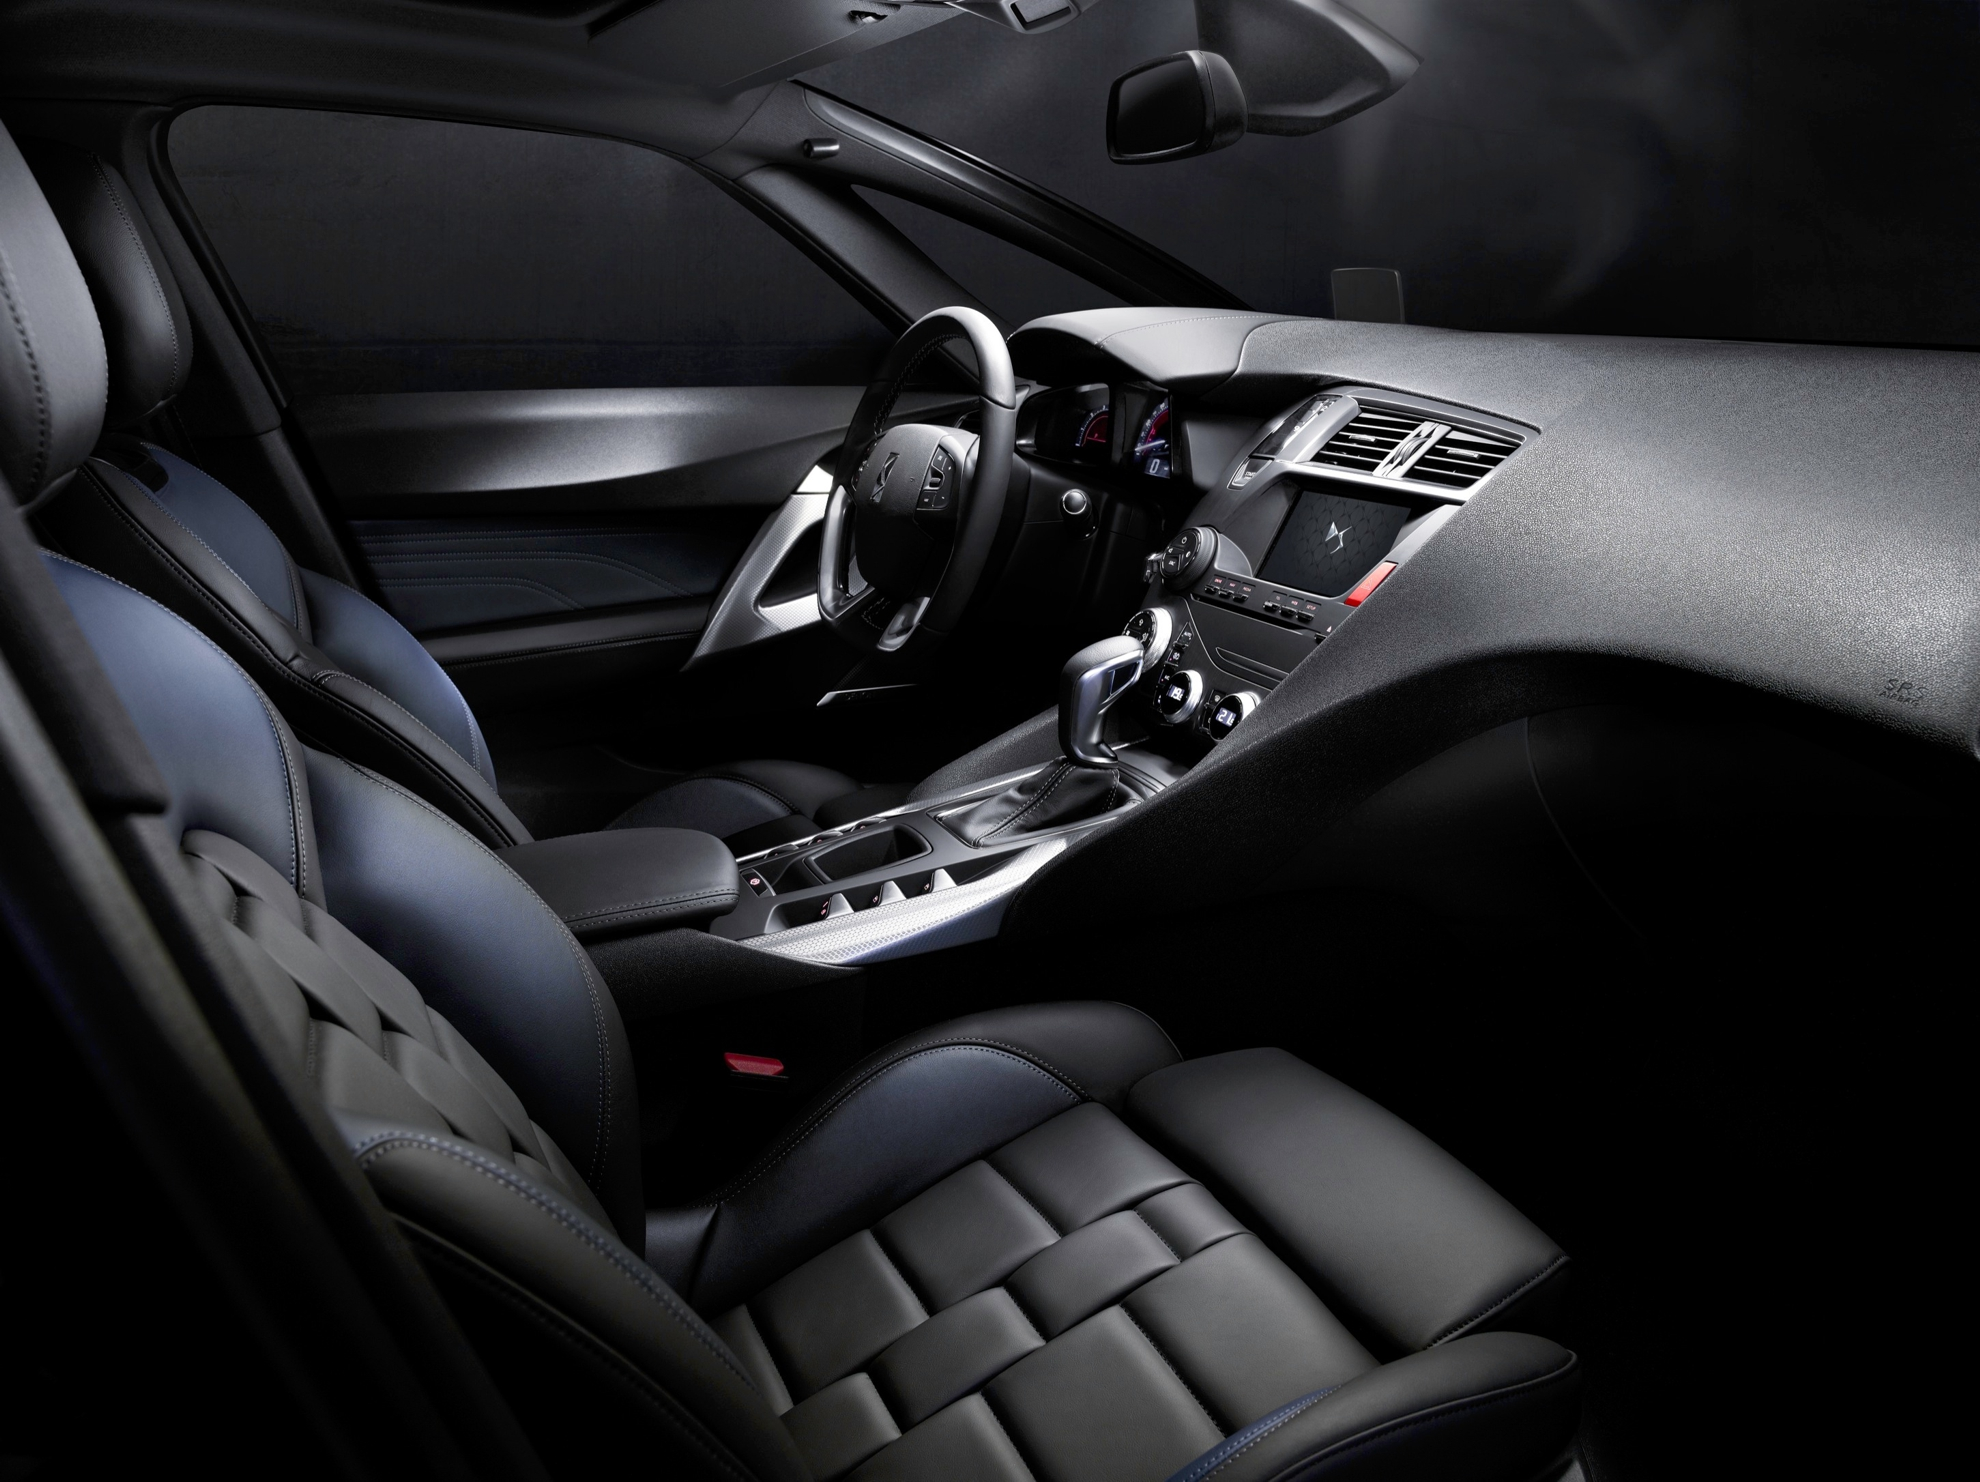 NEW CITROEN DS 5 - THE SYMBOL OF THE DS BRAND